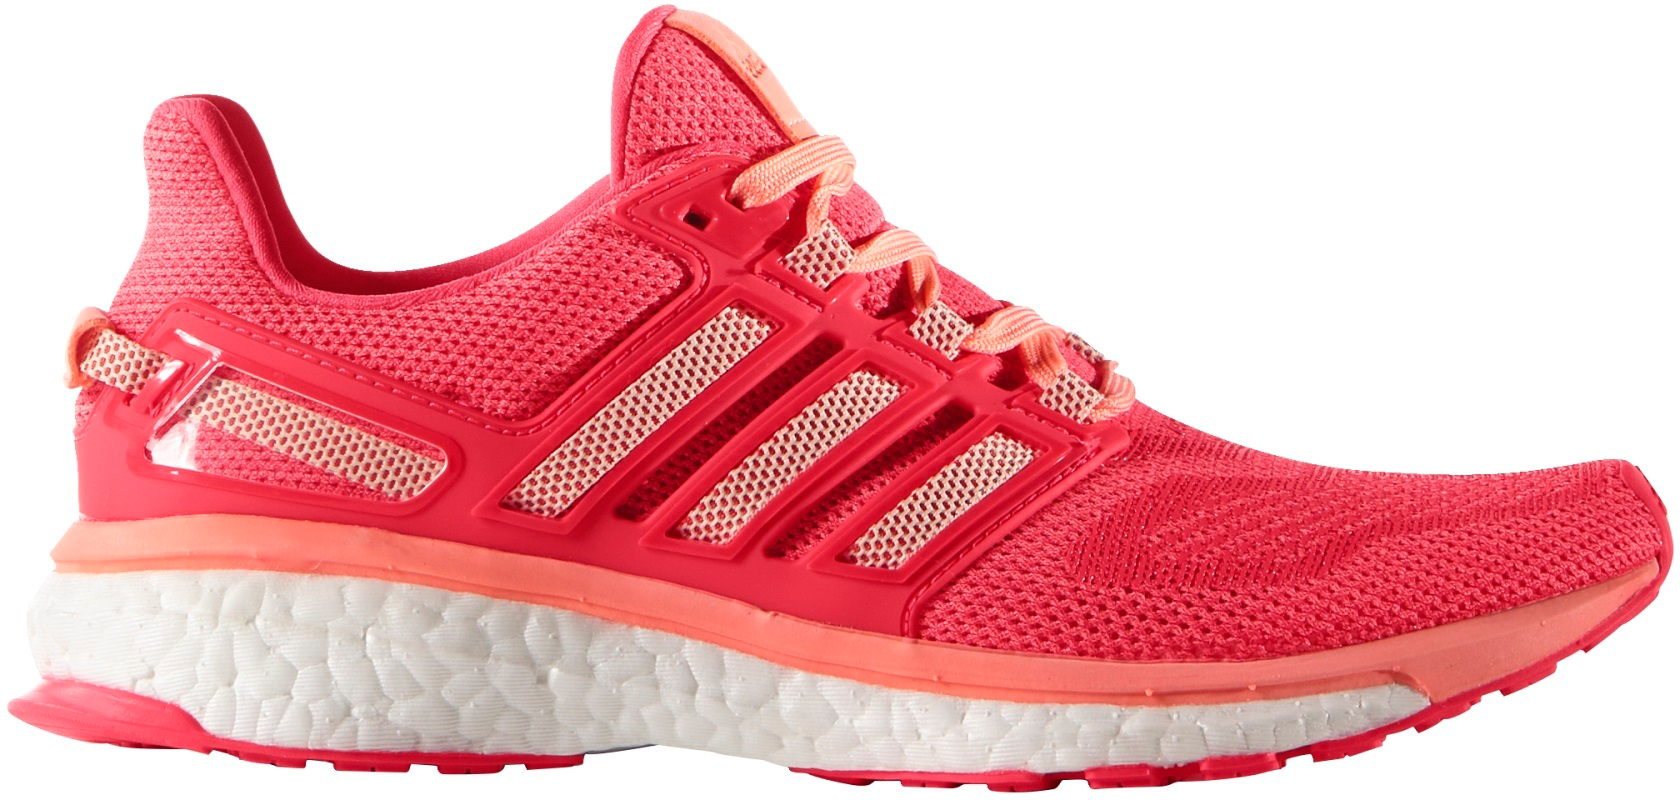 adidas energy boost womens